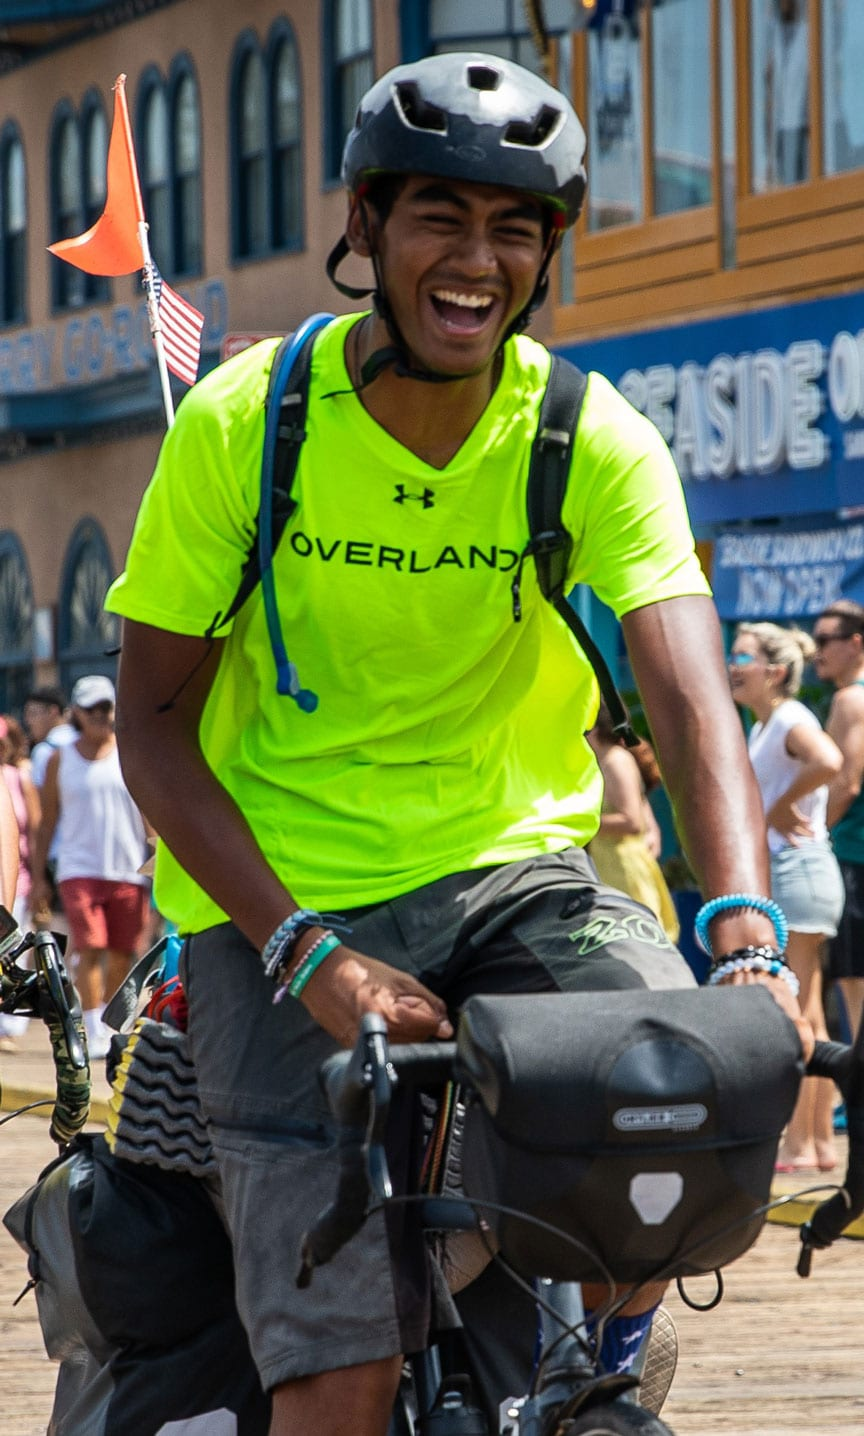 Teen camper smiles as he sets off on a summer adventure - biking coast to coast on an Overland trip!